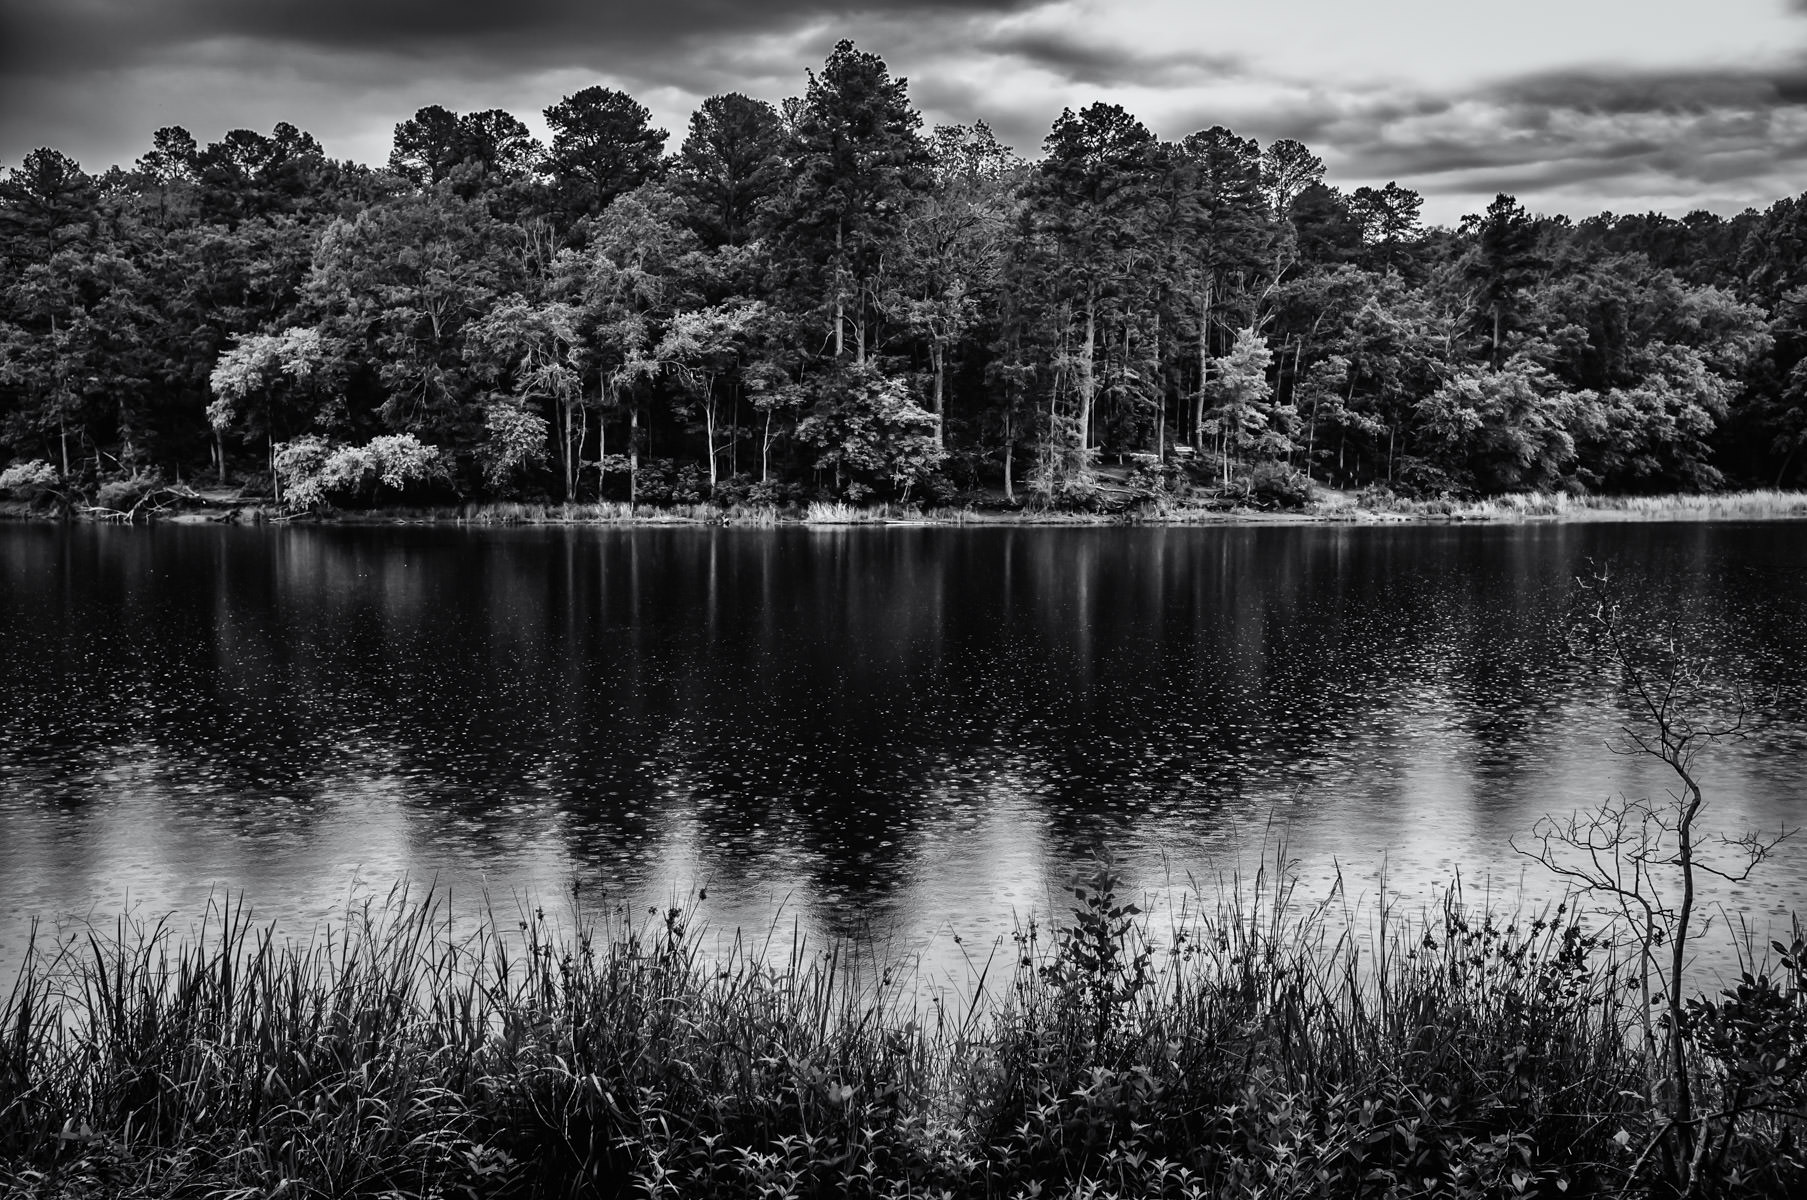 The lake at Tyler State Park, Texas, on a dreary summer day.